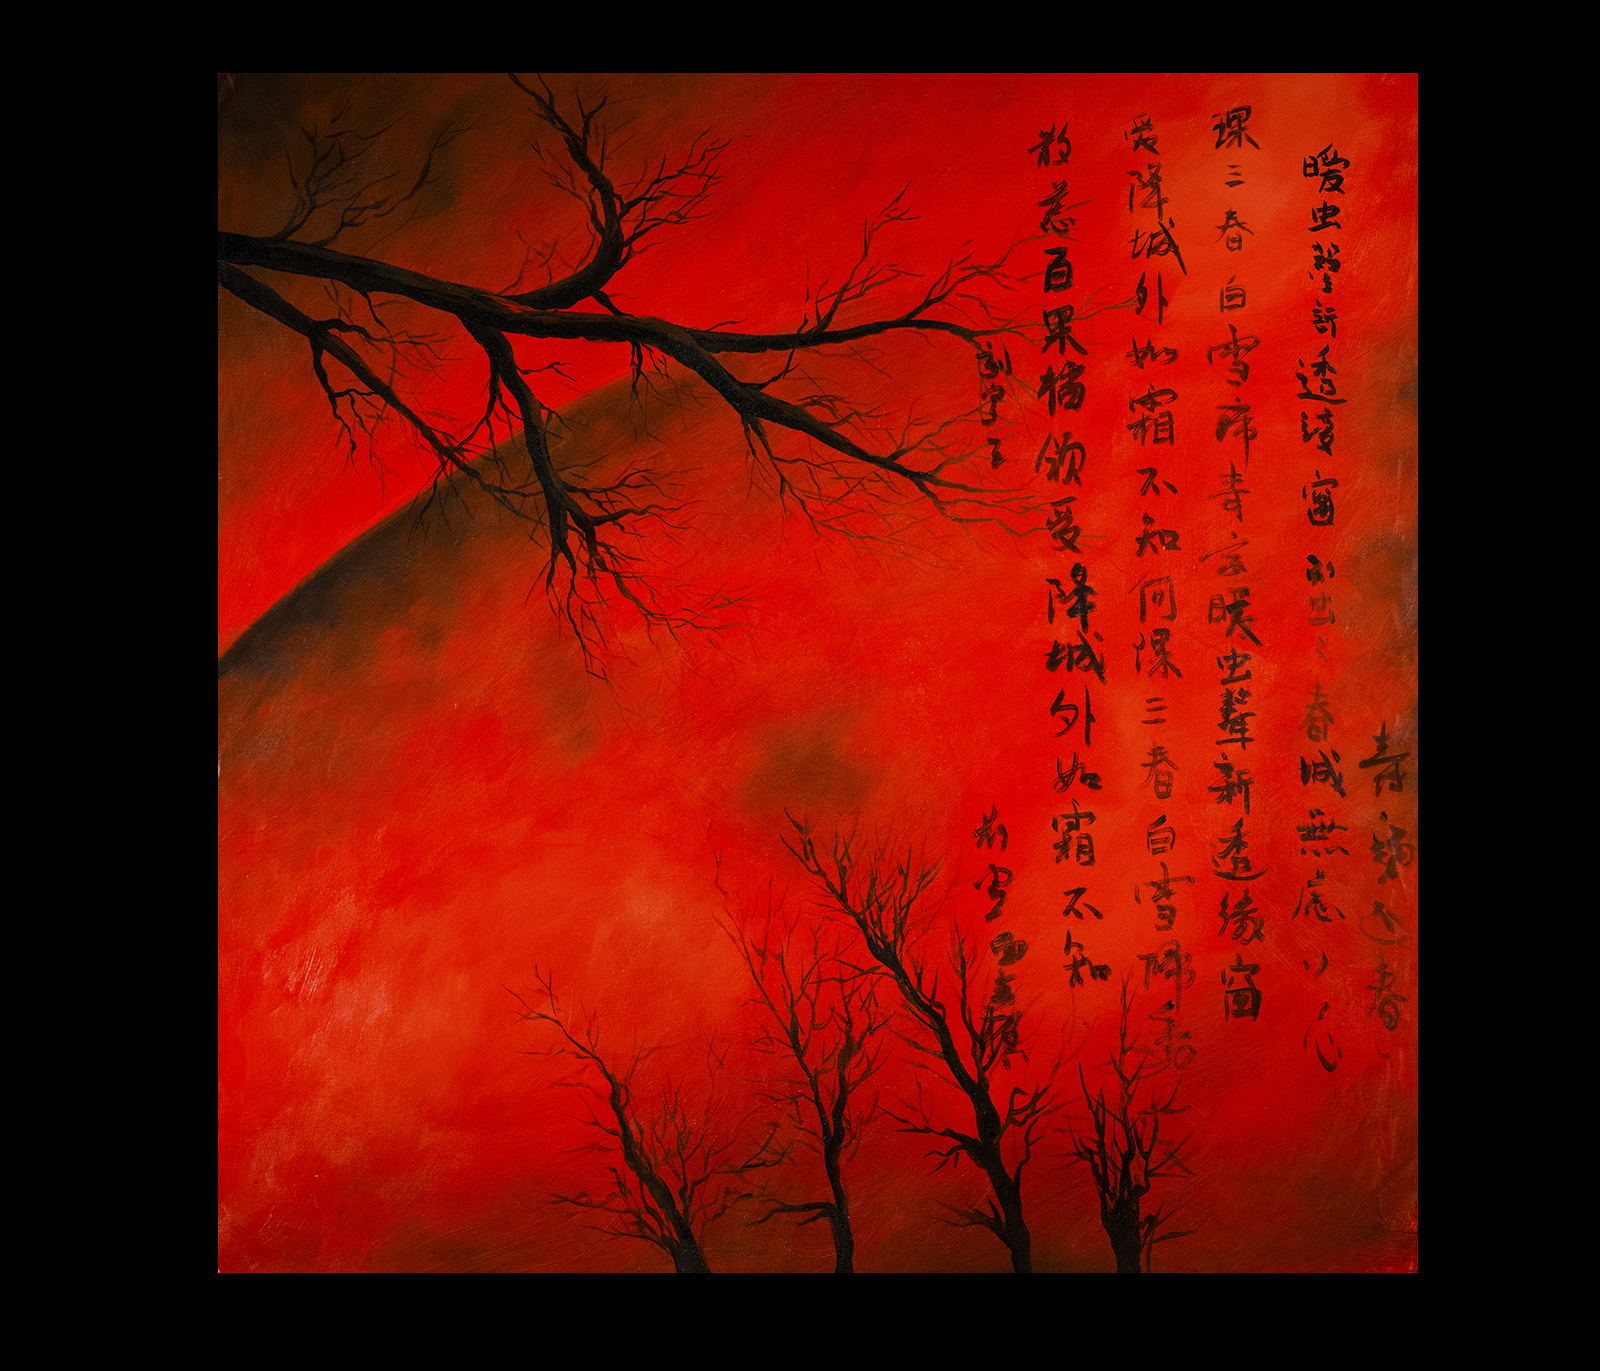 Chinese art chinese calligraphy painting modern wall art for Asian wall art